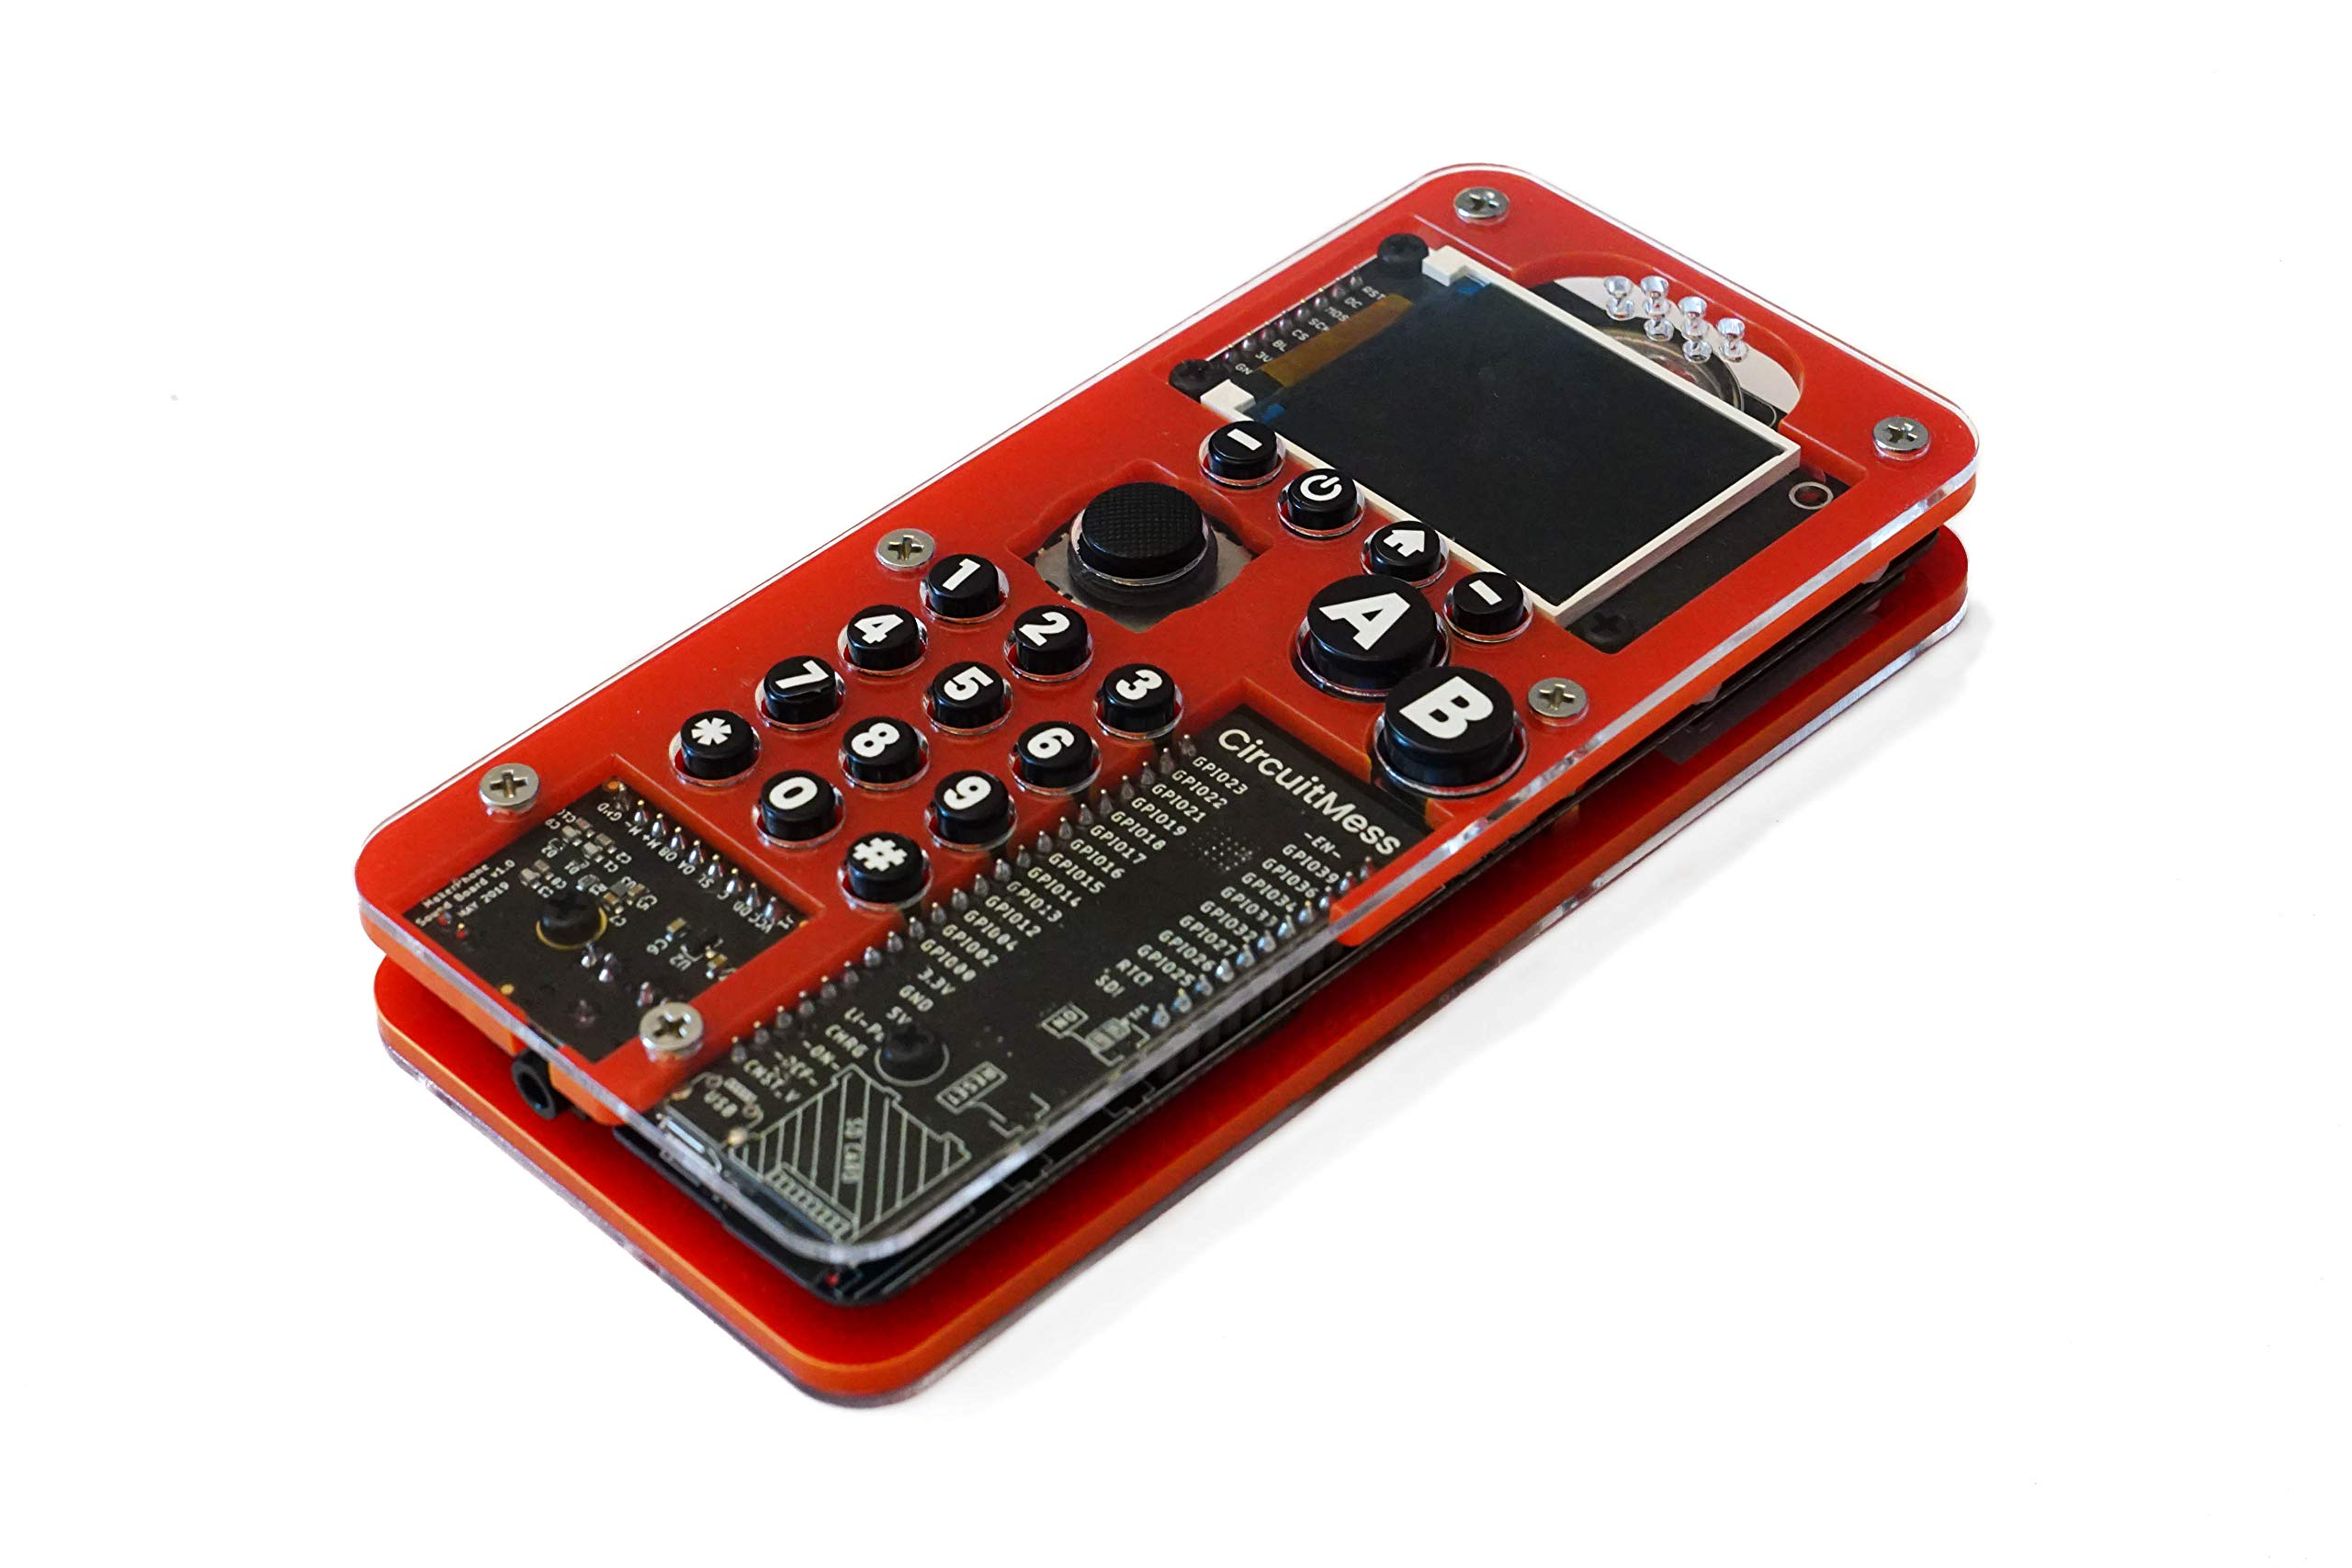 CircuitMess Ringo 4G Kit | Build Your Own Mobile Phone | Do-It-Yourself Project by CircuitMess